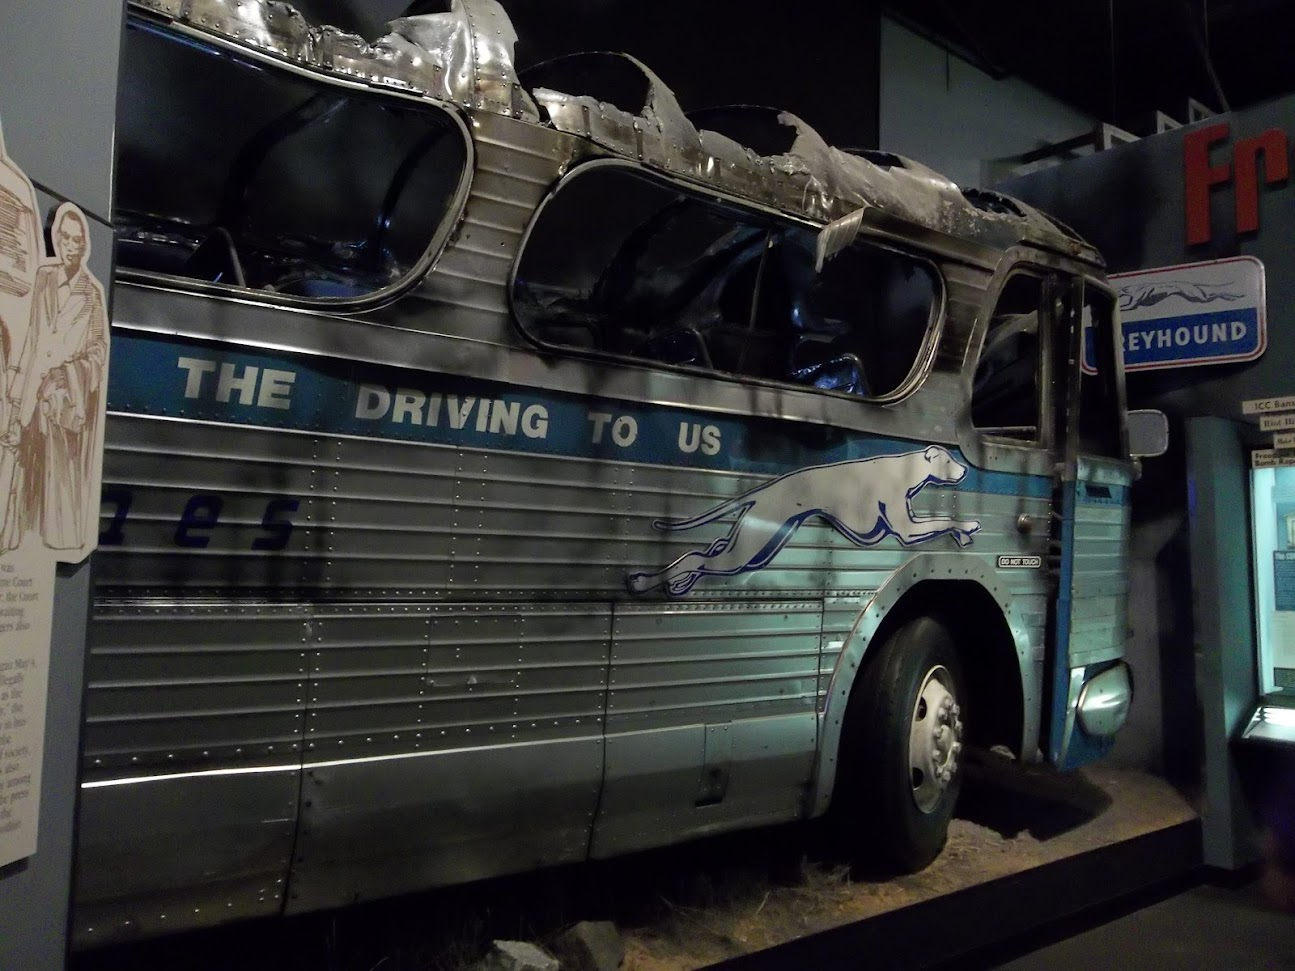 burned Greyhound bus at the Civil Rights Museum